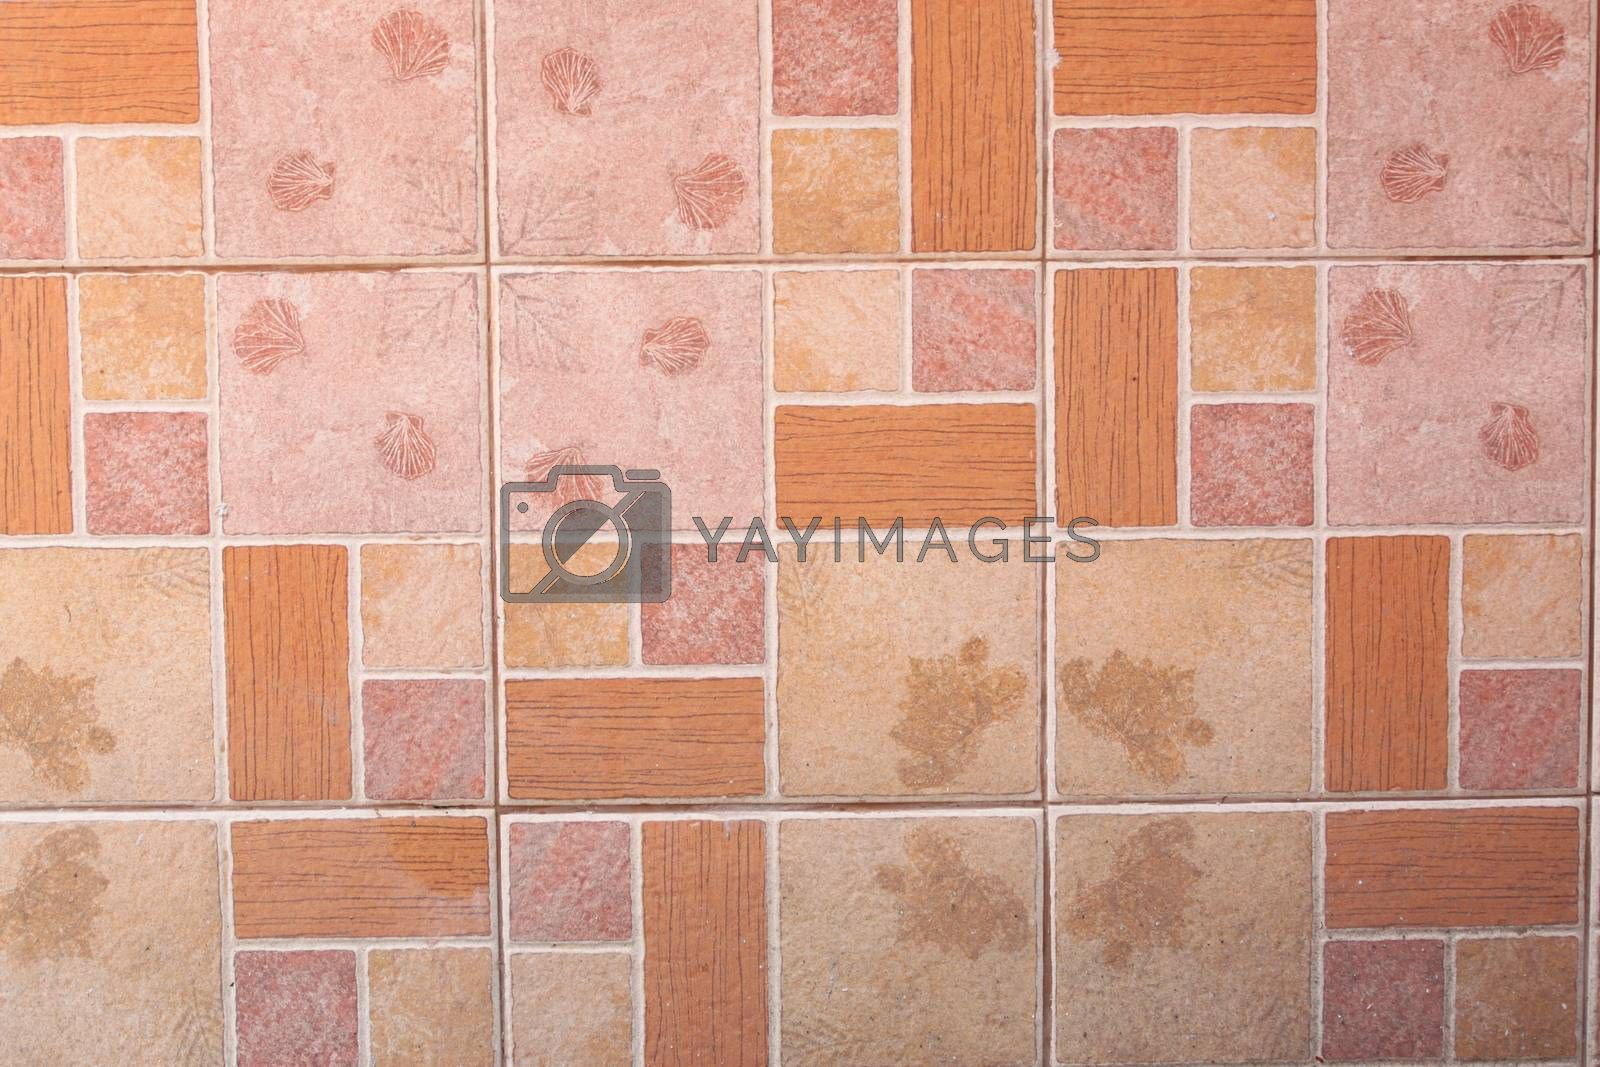 Pattern of floor tile for the background.